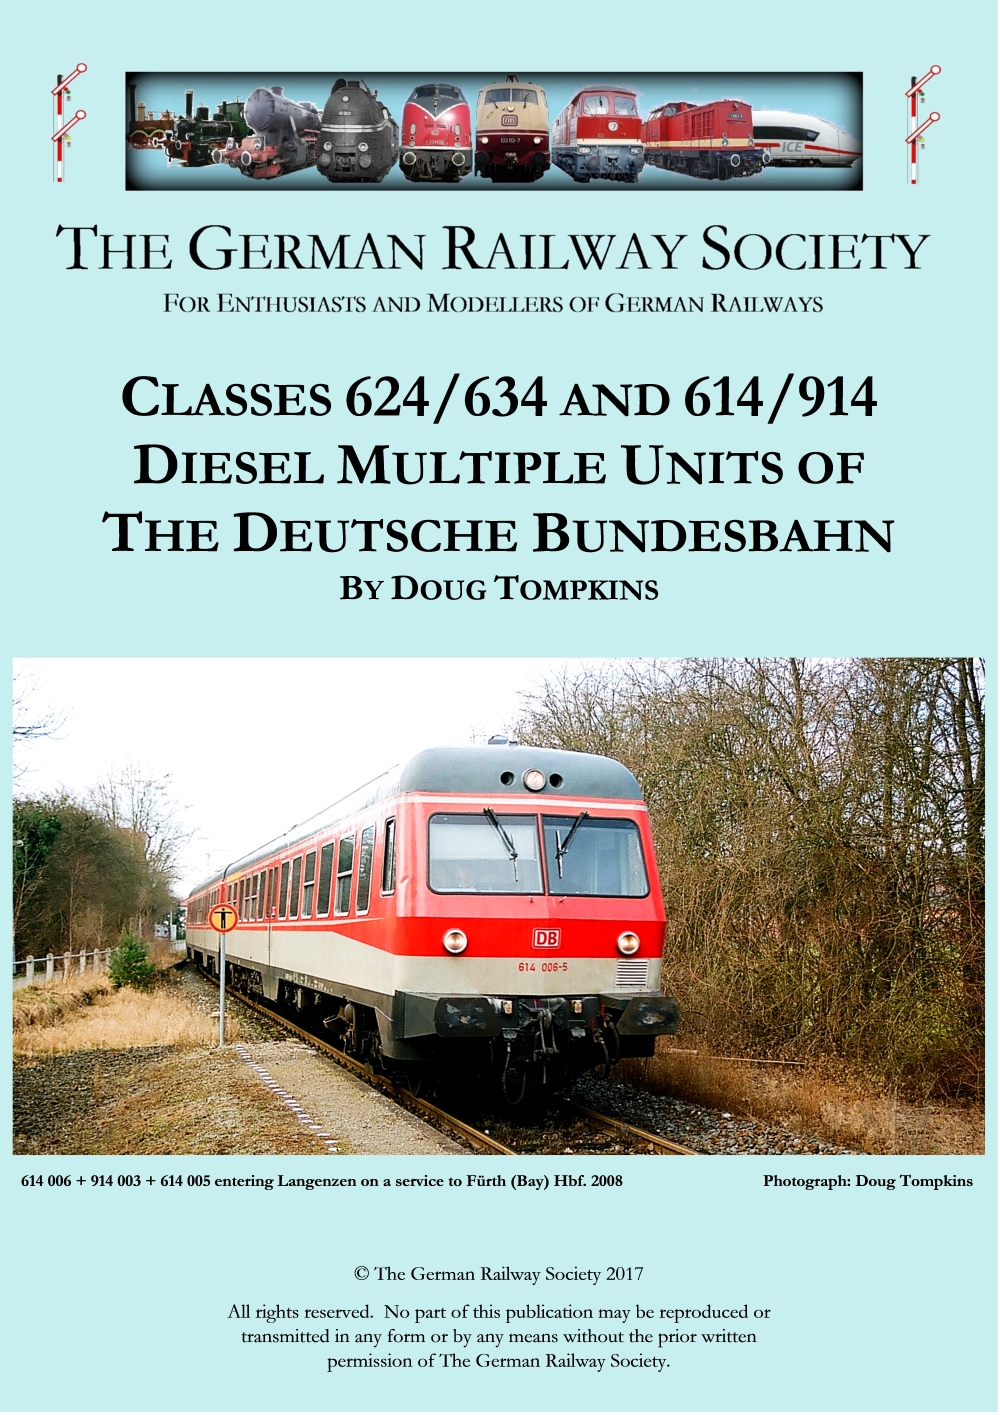 Cover image: Classes 624/634 and 614/914 diesel multiple units of the Deutsche Bundesbahn